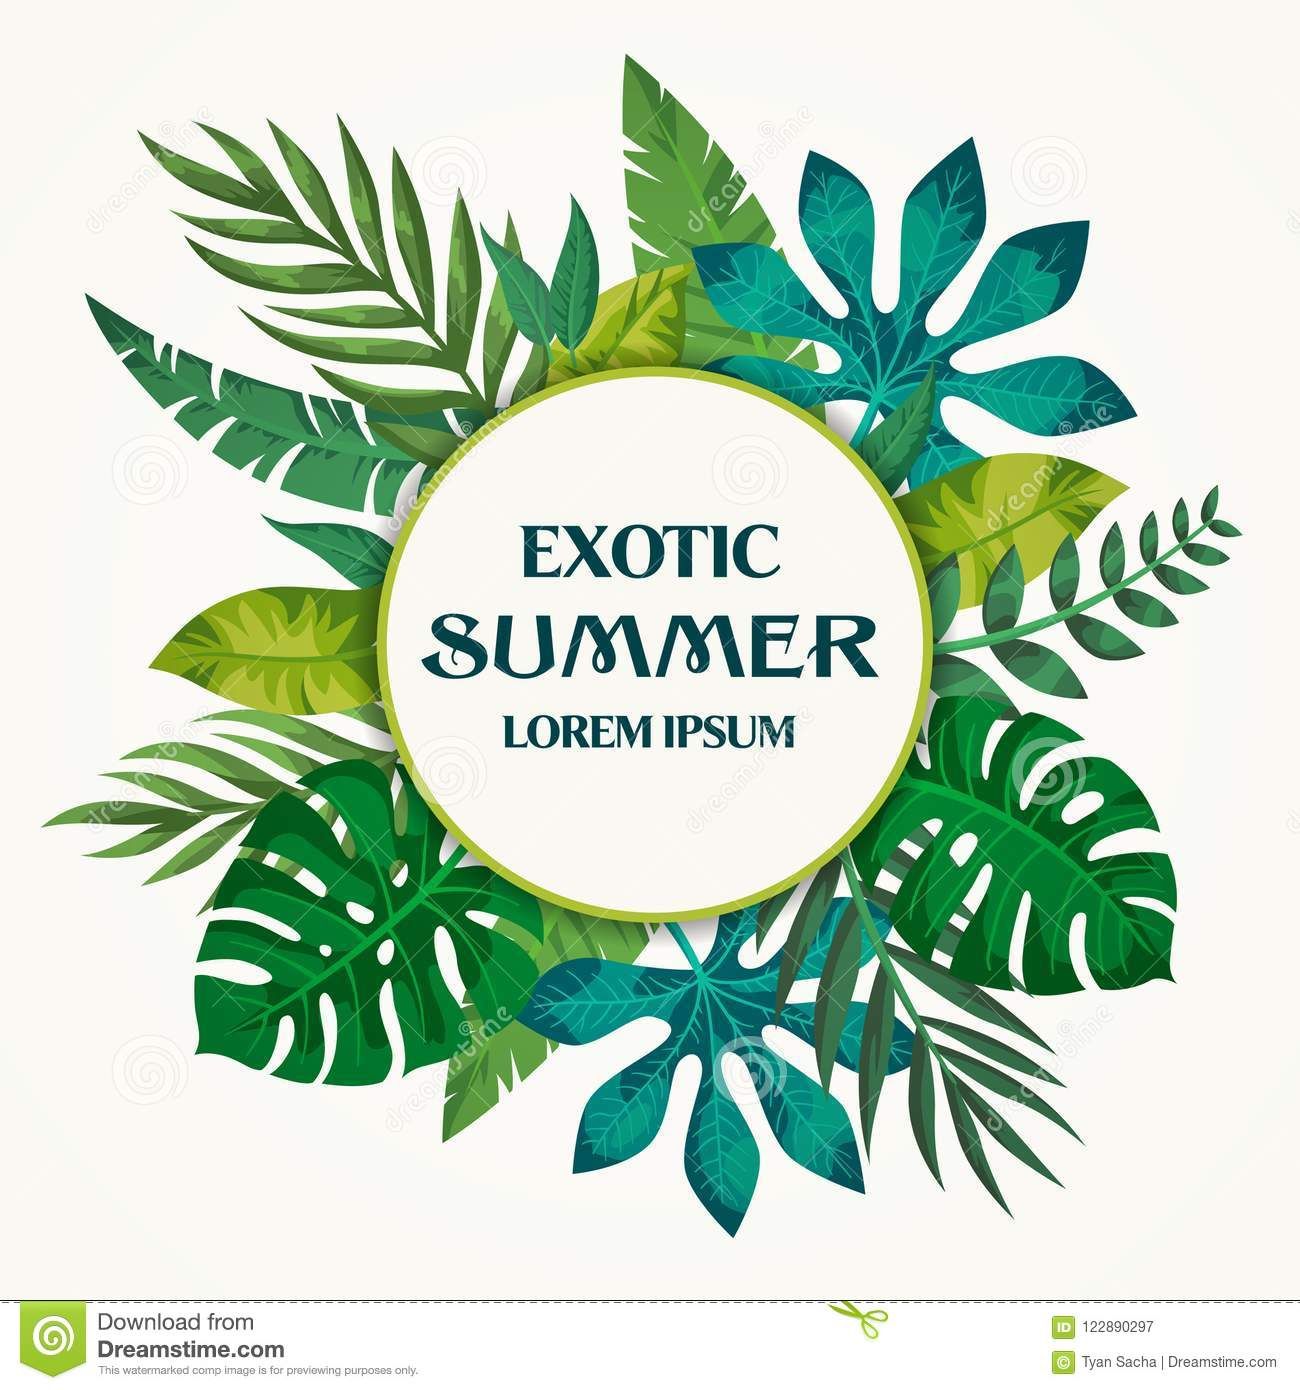 Trendy Summer Tropical Leaves Vector Design On White Background Stock Vector Illustration Of Ecology Island 122890297 The best selection of royalty free tropical leaves background vector art, graphics and stock illustrations. https www dreamstime com trendy summer tropical leaves vector design bright exotic card can be used like bunner flyer invitation card trendy summer image122890297